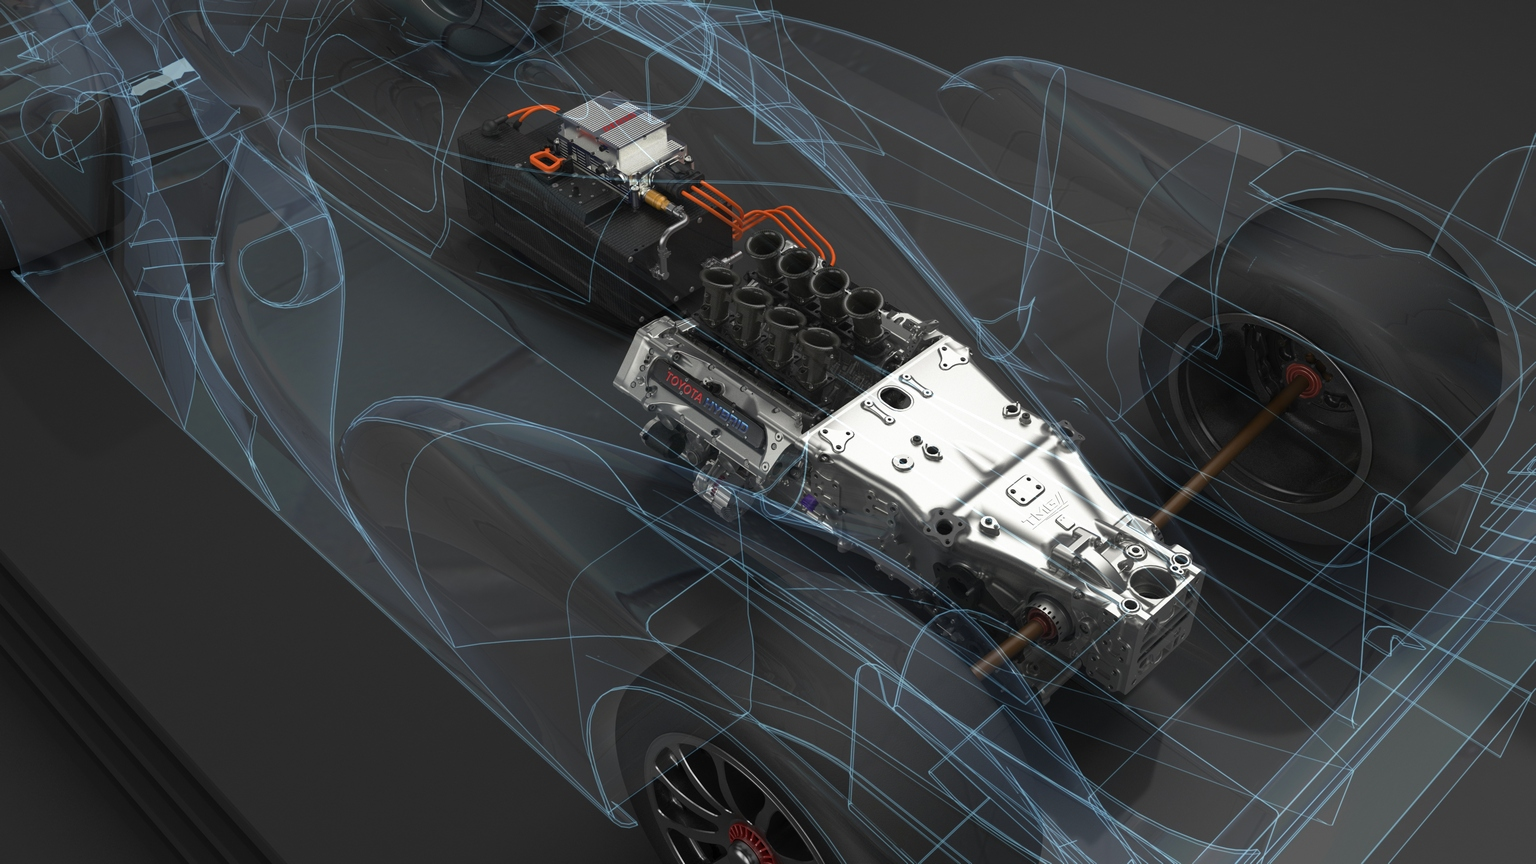 Toyota Hybrid Racing - Supercapacitor System Explained